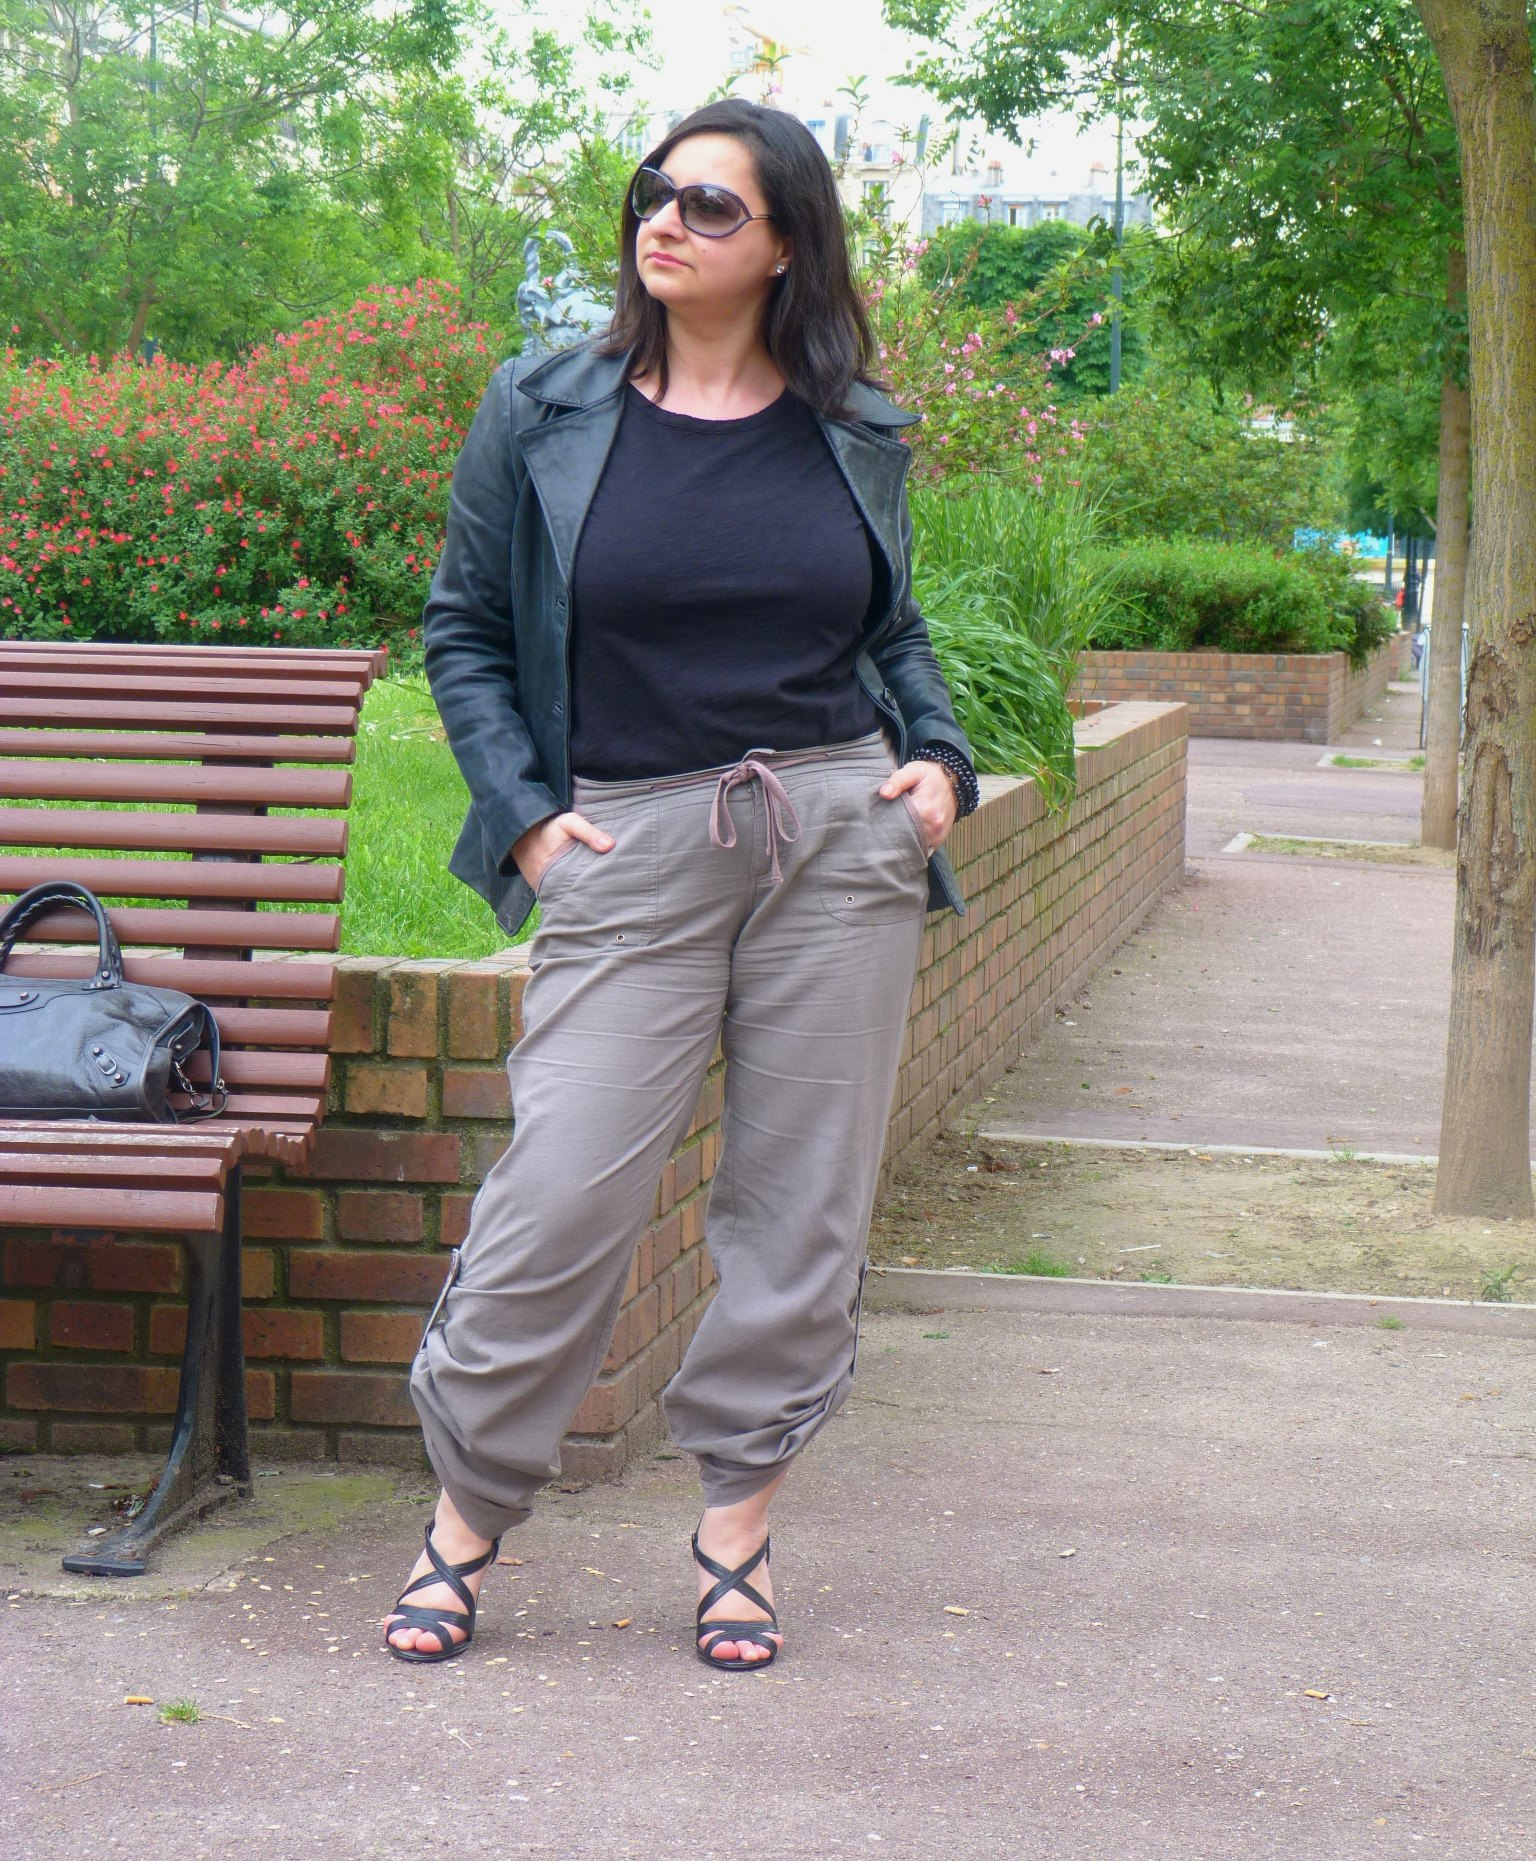 Army pant, Baroudeuse chic